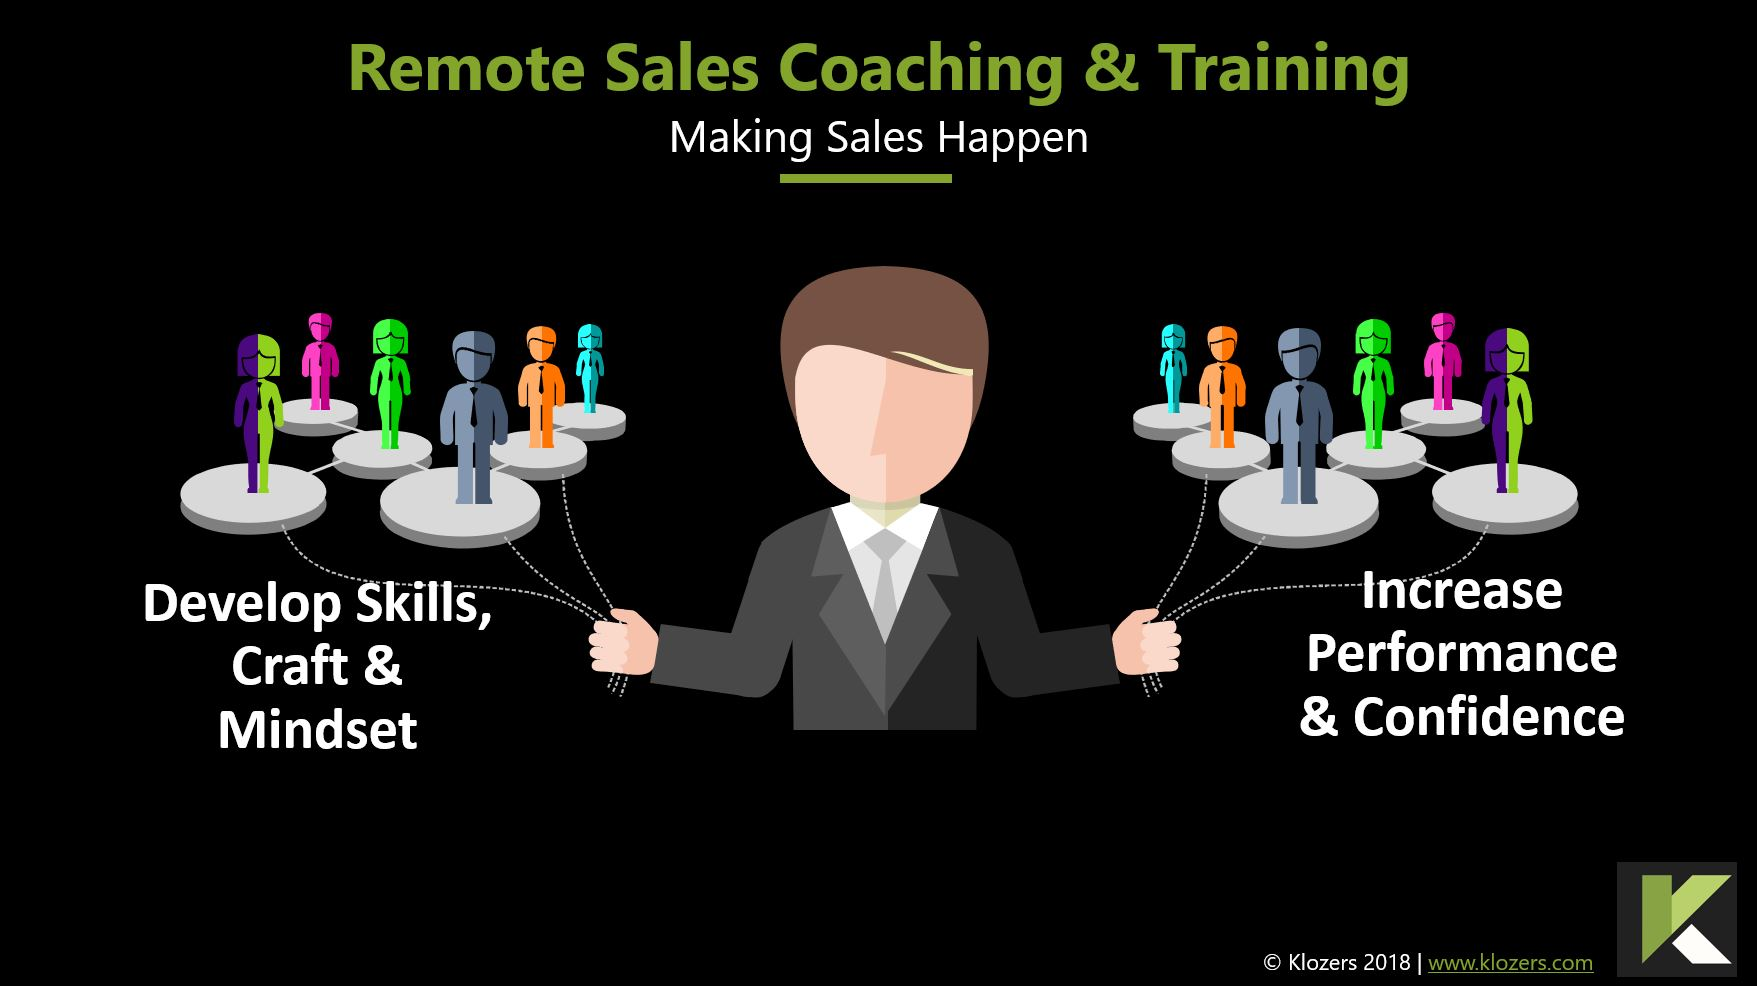 Remote Sales Coaching